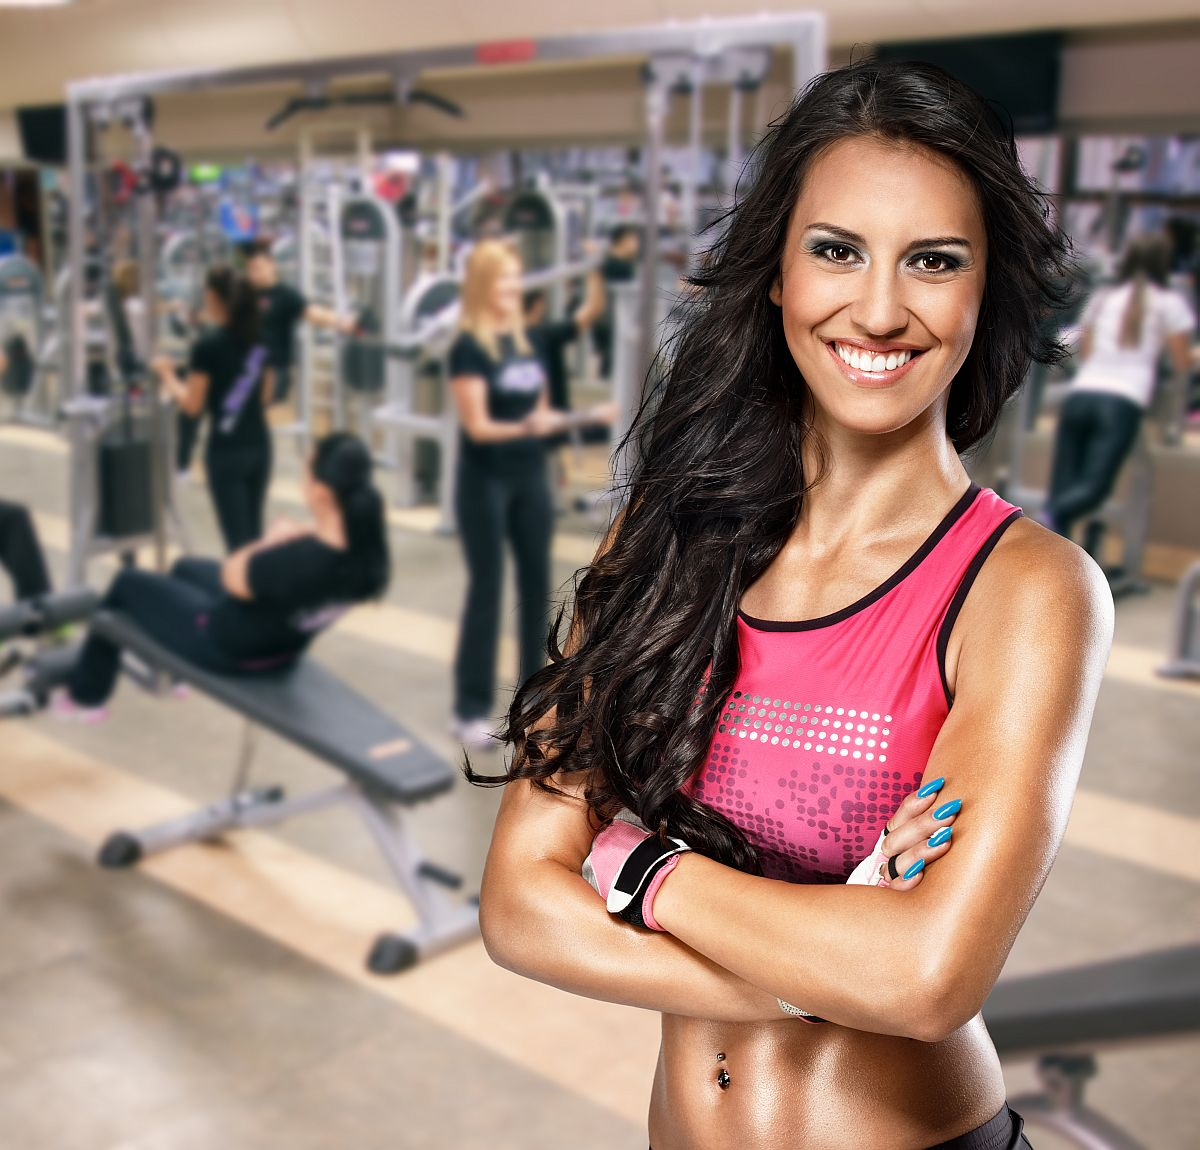 Portrait of smiling sporty woman in gym